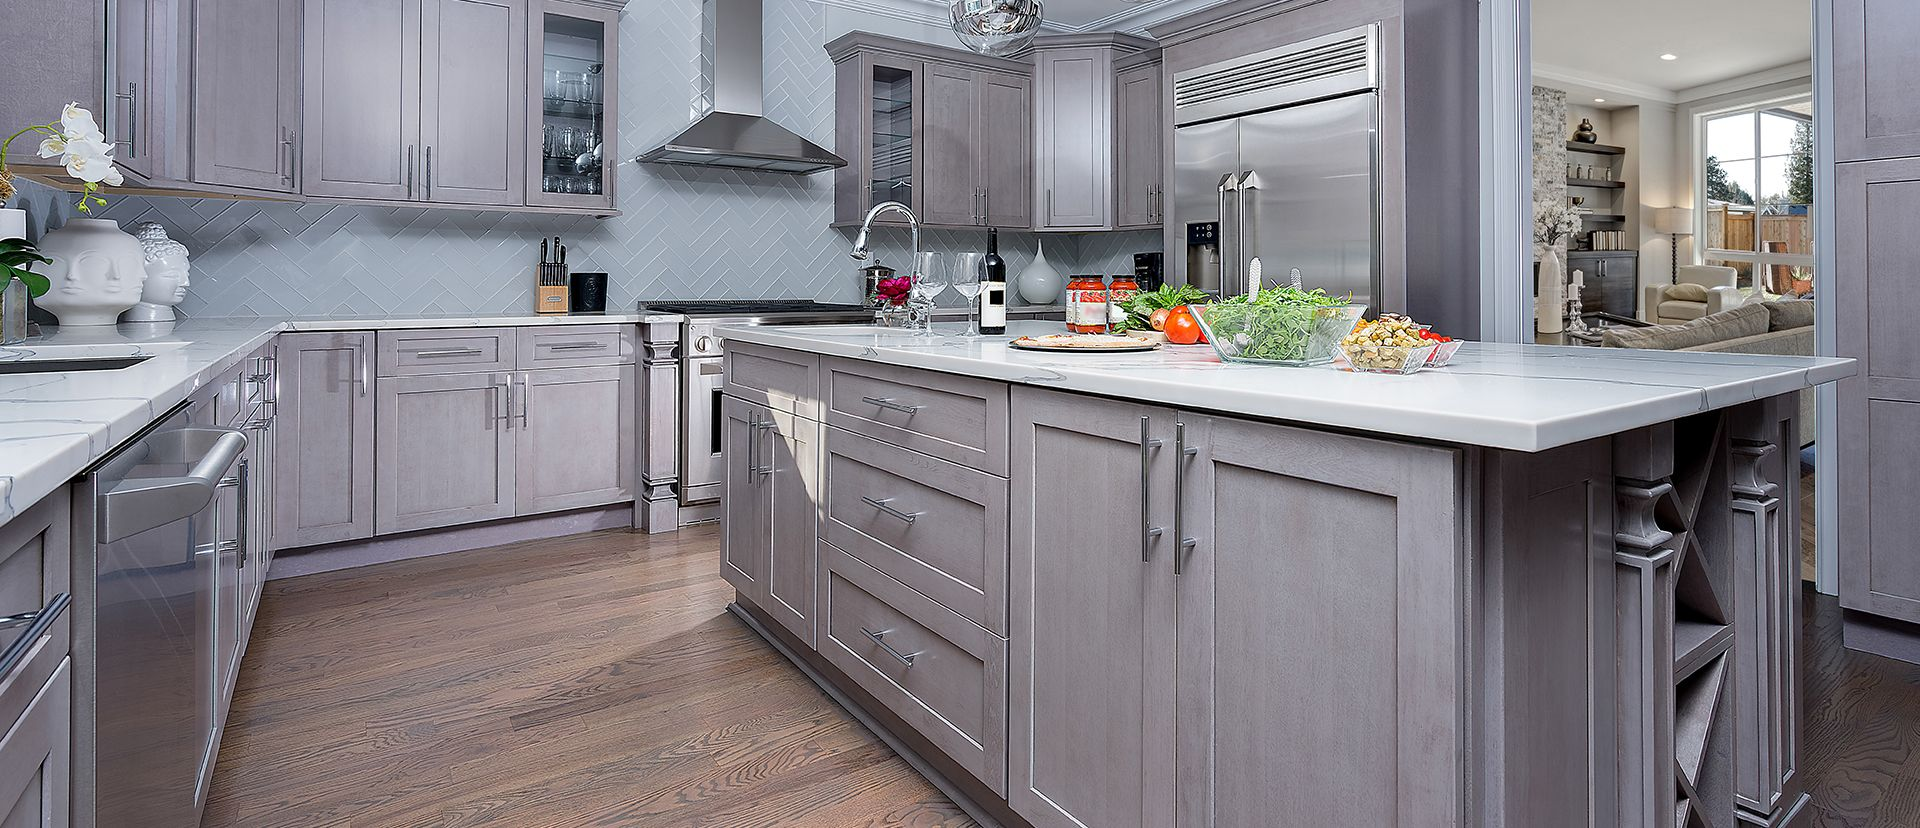 Custom Made Kitchen Cabinets Custom Wood Cabinets